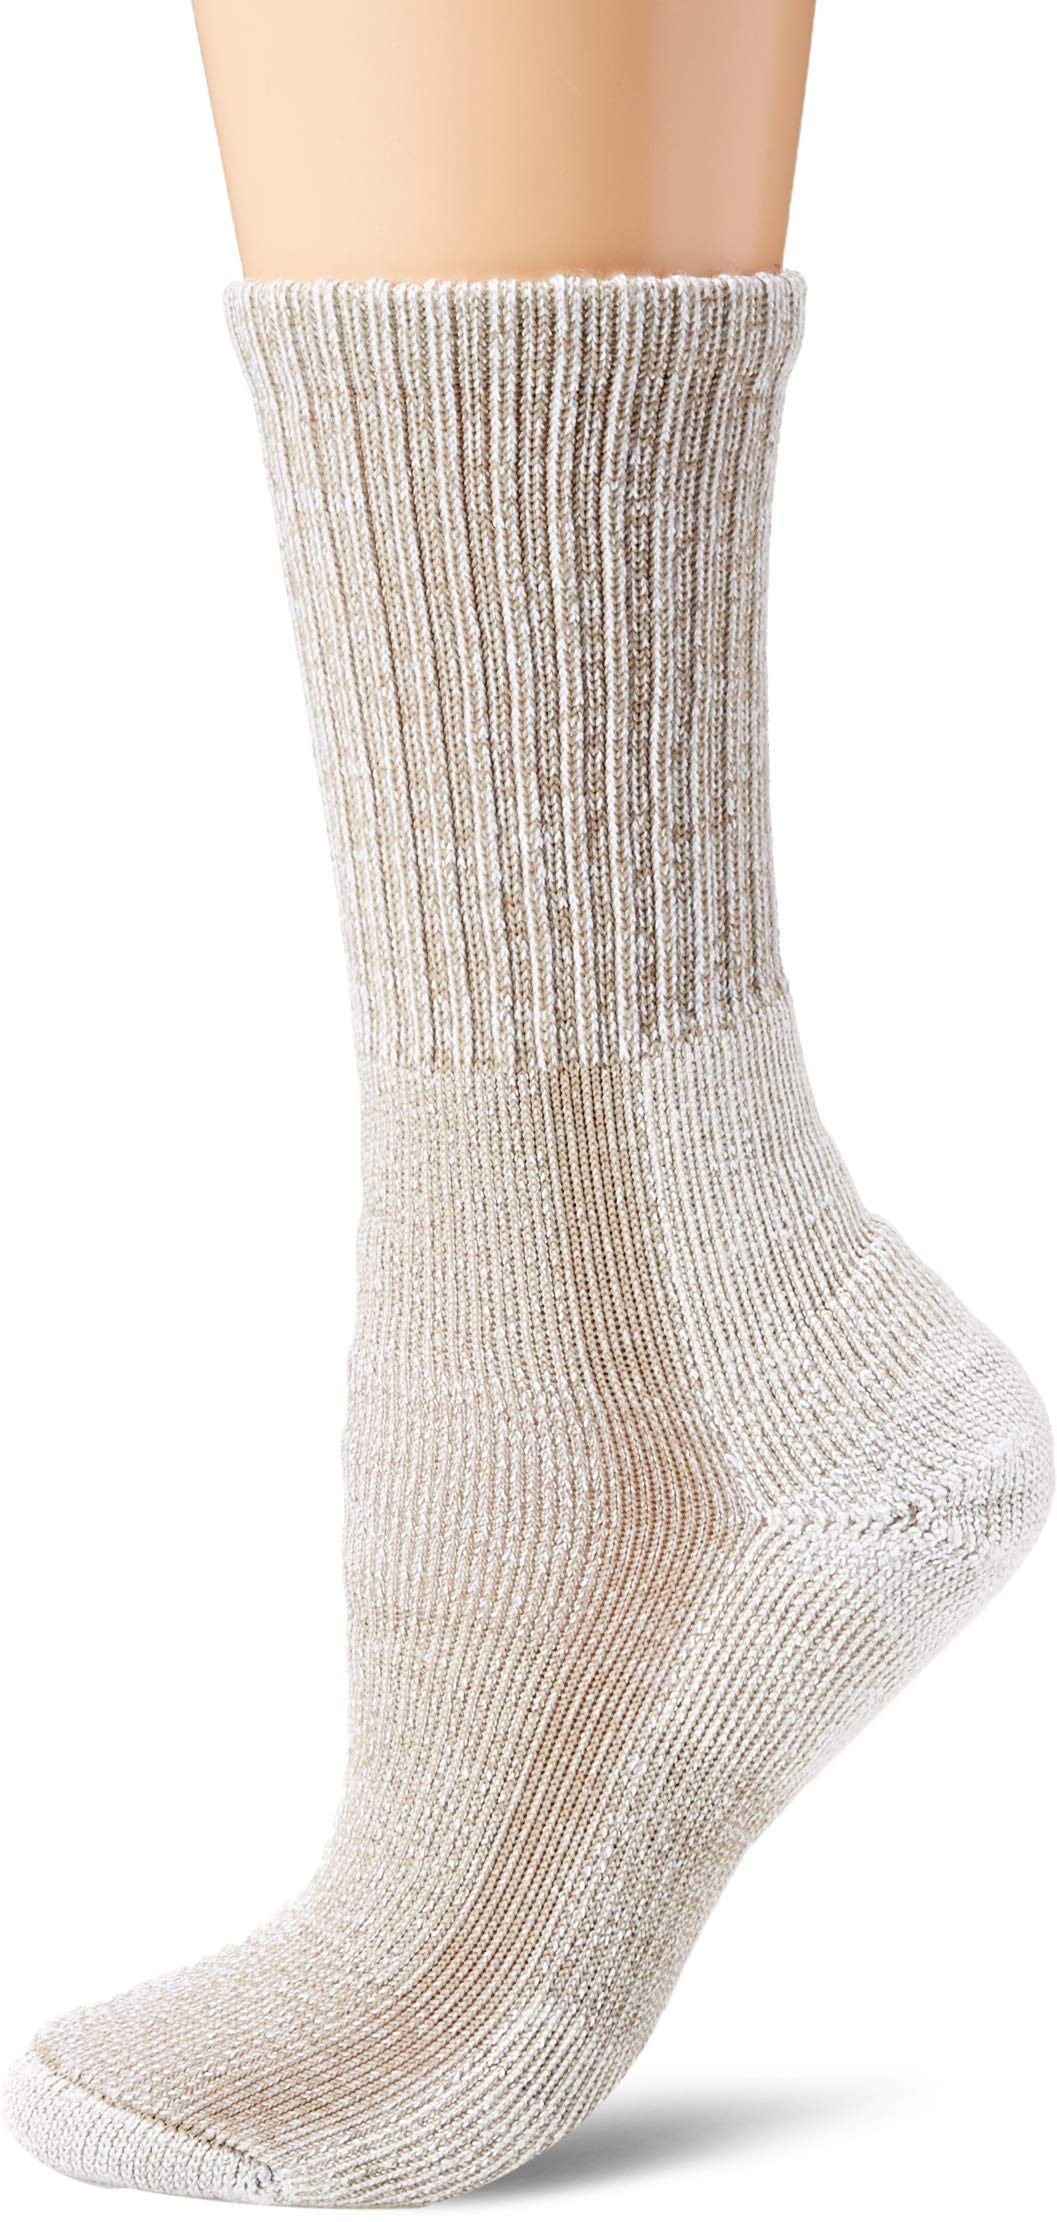 Thorlos Women's LTHW Max Cushion Hiking Crew Socks, Khaki, Small by thorlos